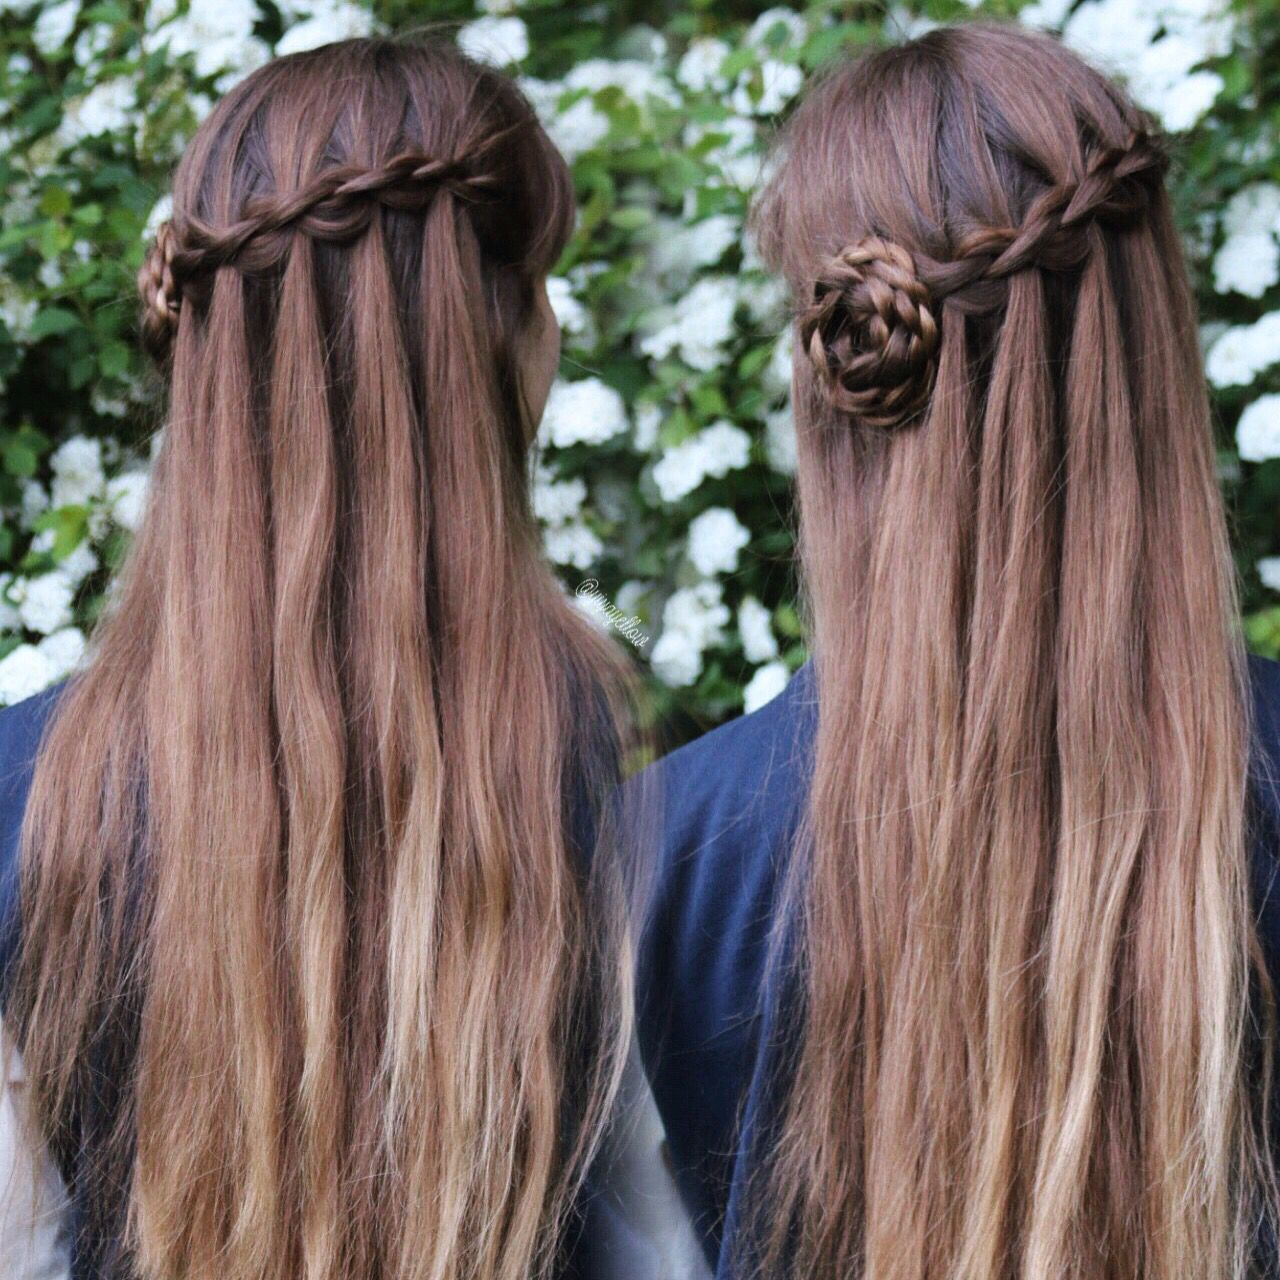 Coiffure Tresse Noeud 3d Waterfall Braid By Yiyayellow Belles Coiffures